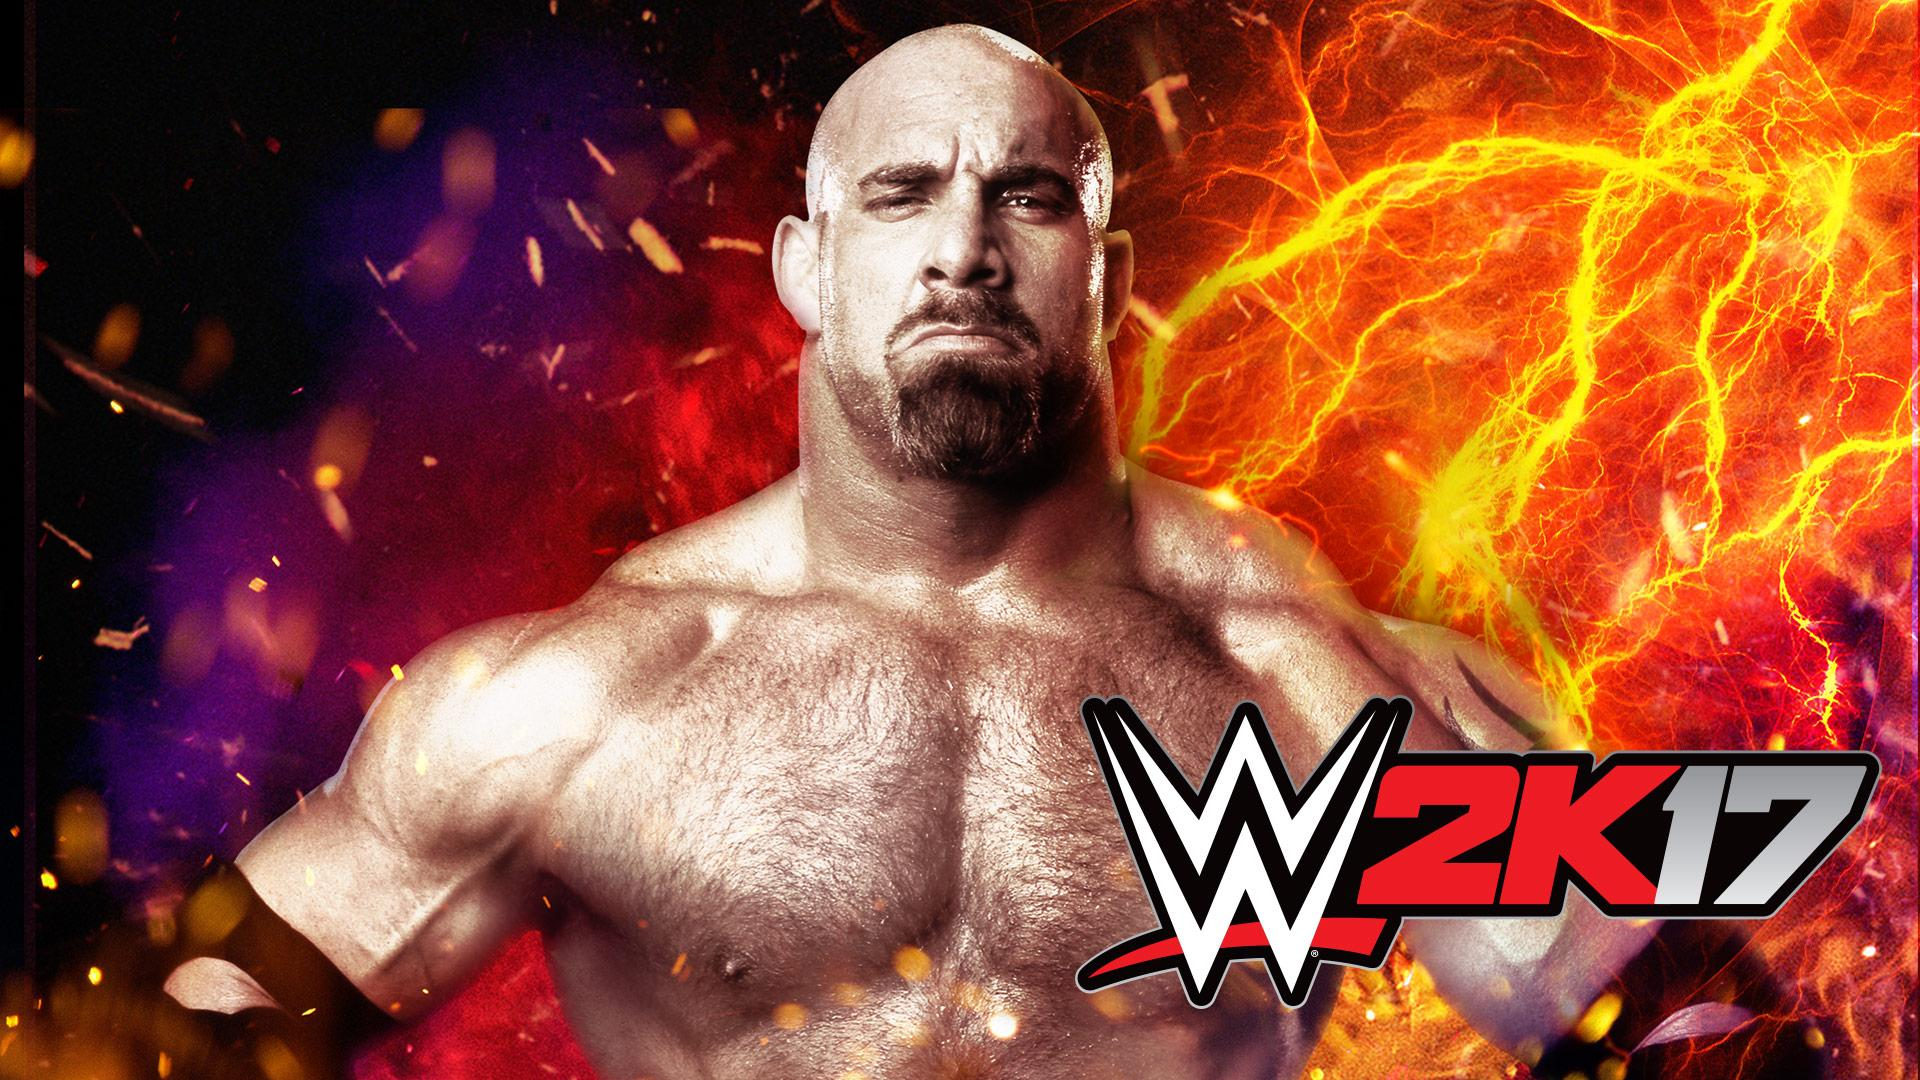 Wwe 2k17 Wallpapers Artworks Images Gallery